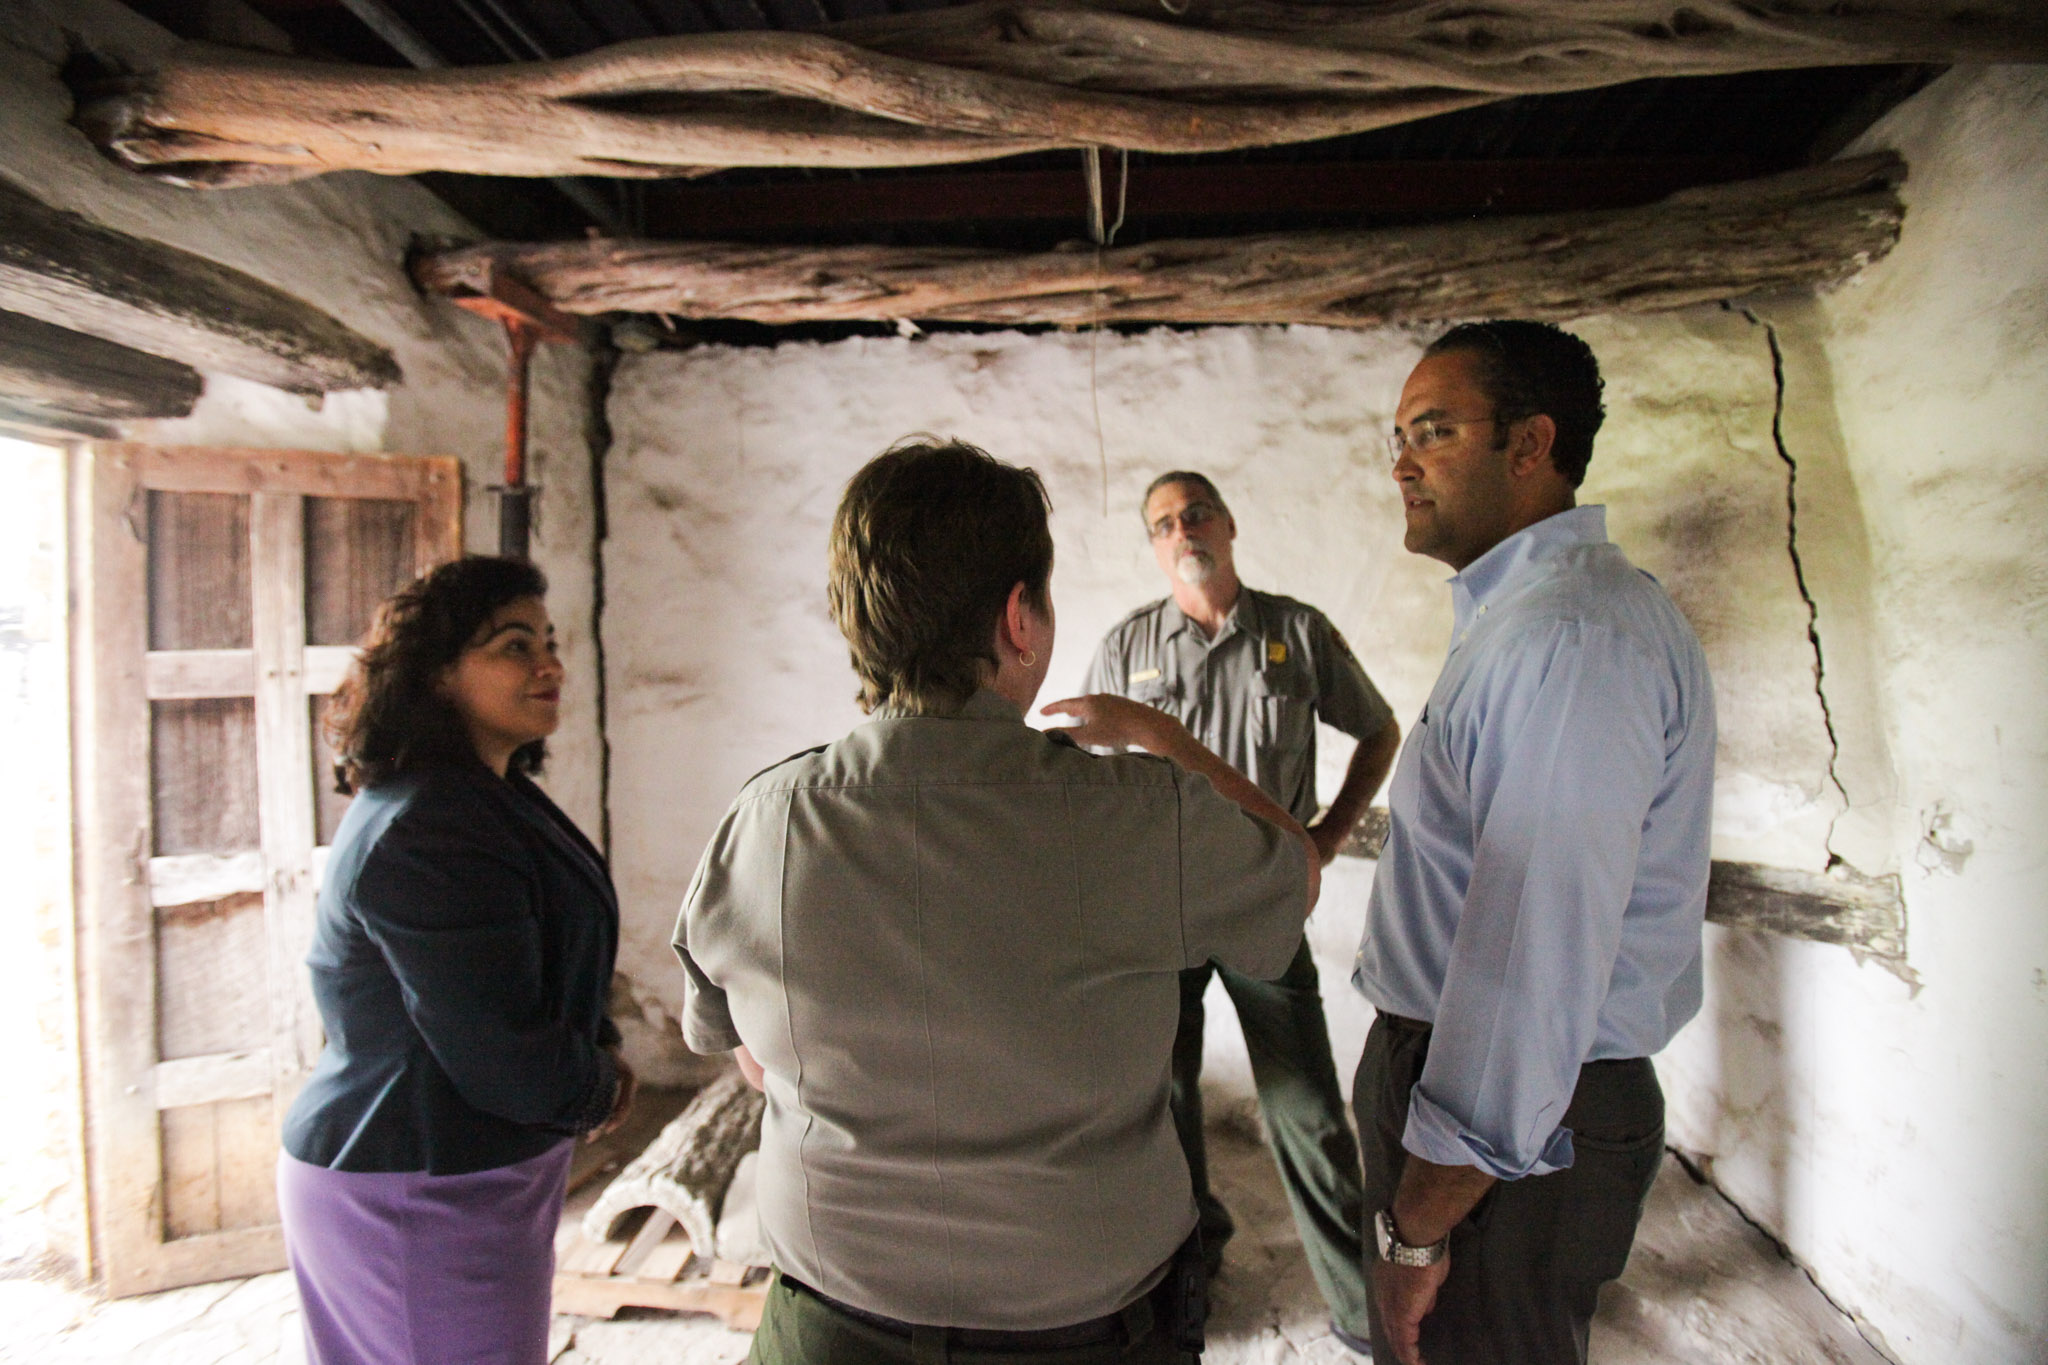 U.S. Rep. Will Hurd (right) discusses the National Park Service Legacy Act with (from left) Councilwoman Rebecca Viagran (D3) San Antonio Missions National Historical Park Superintendent Mardi Arce, and National Park facility manager David Vekasy at Mission San José.